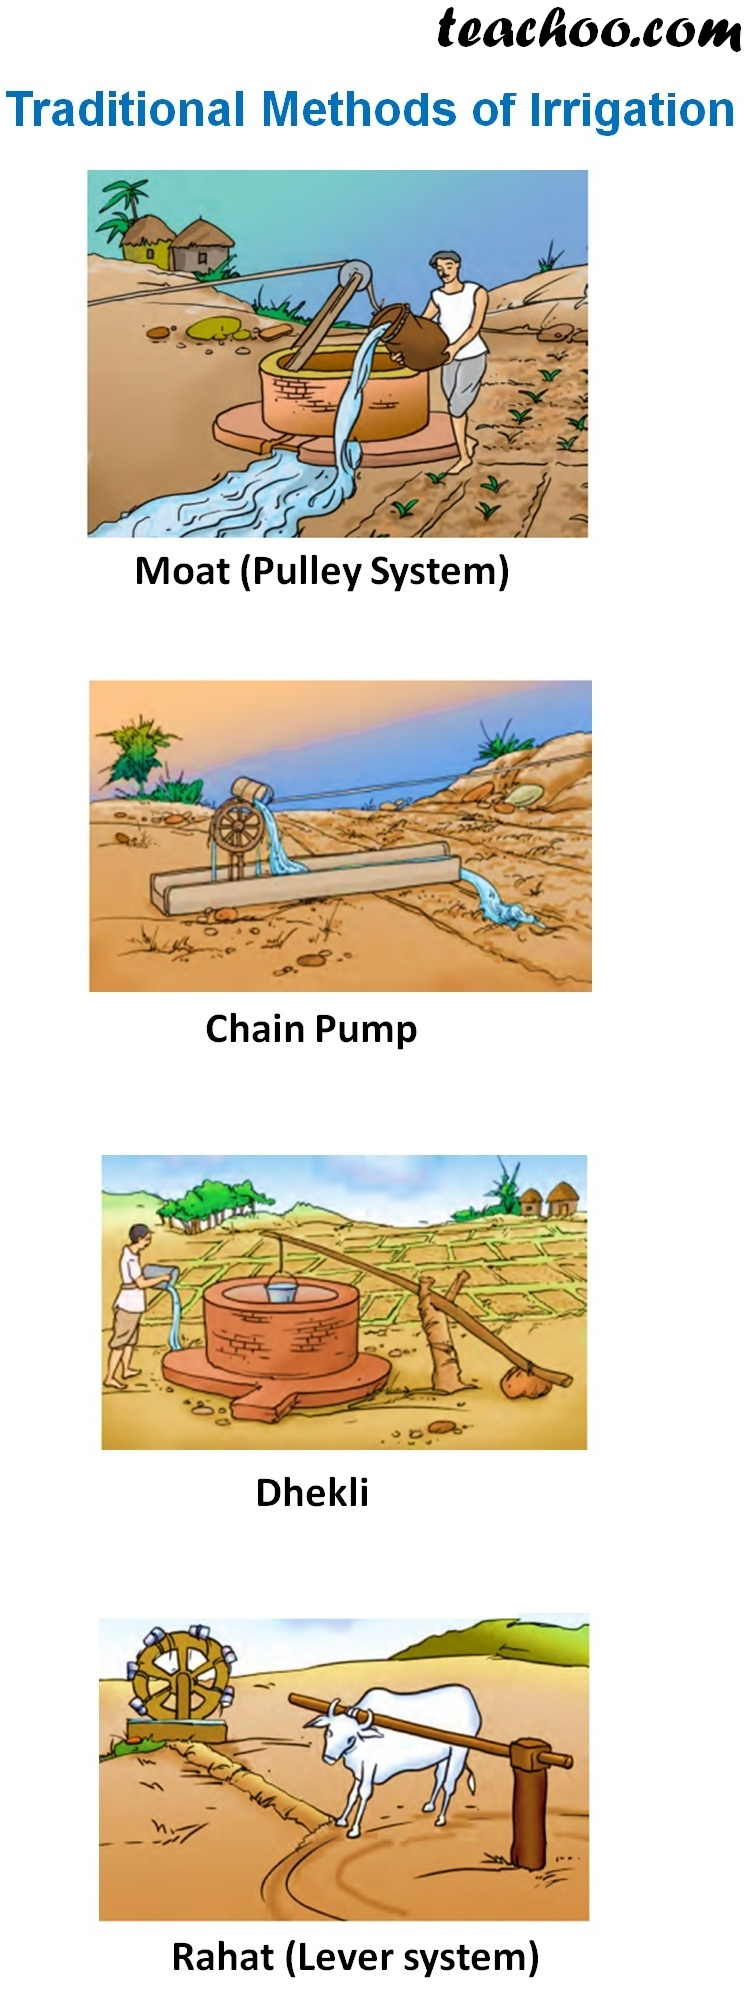 Traditional Methods of Irrigation.jpg